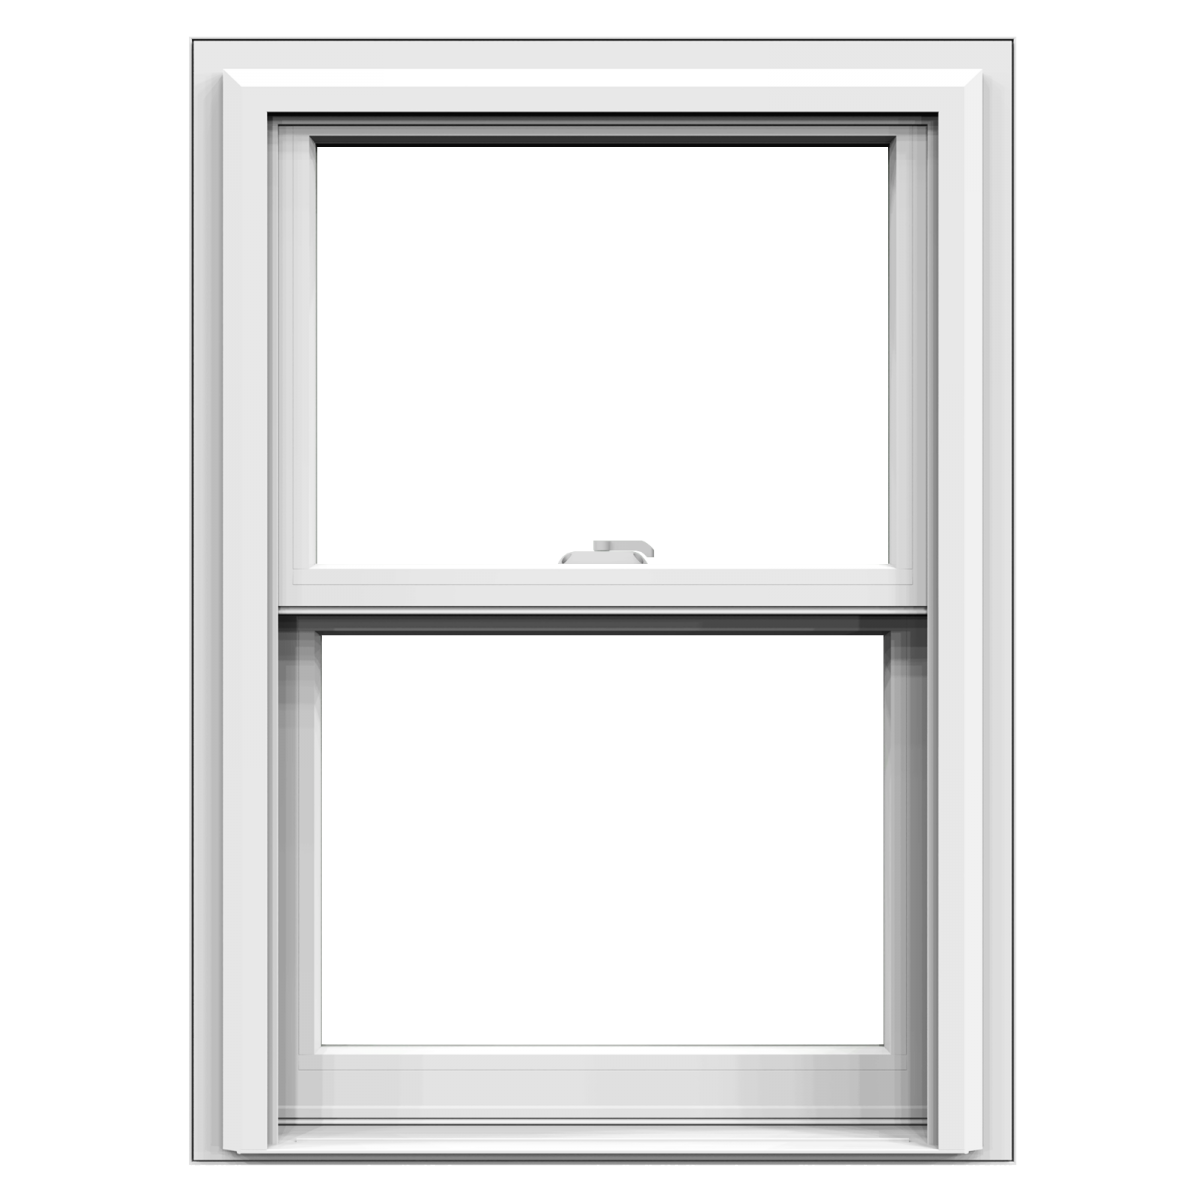 Building windows png. Crusader northeast products